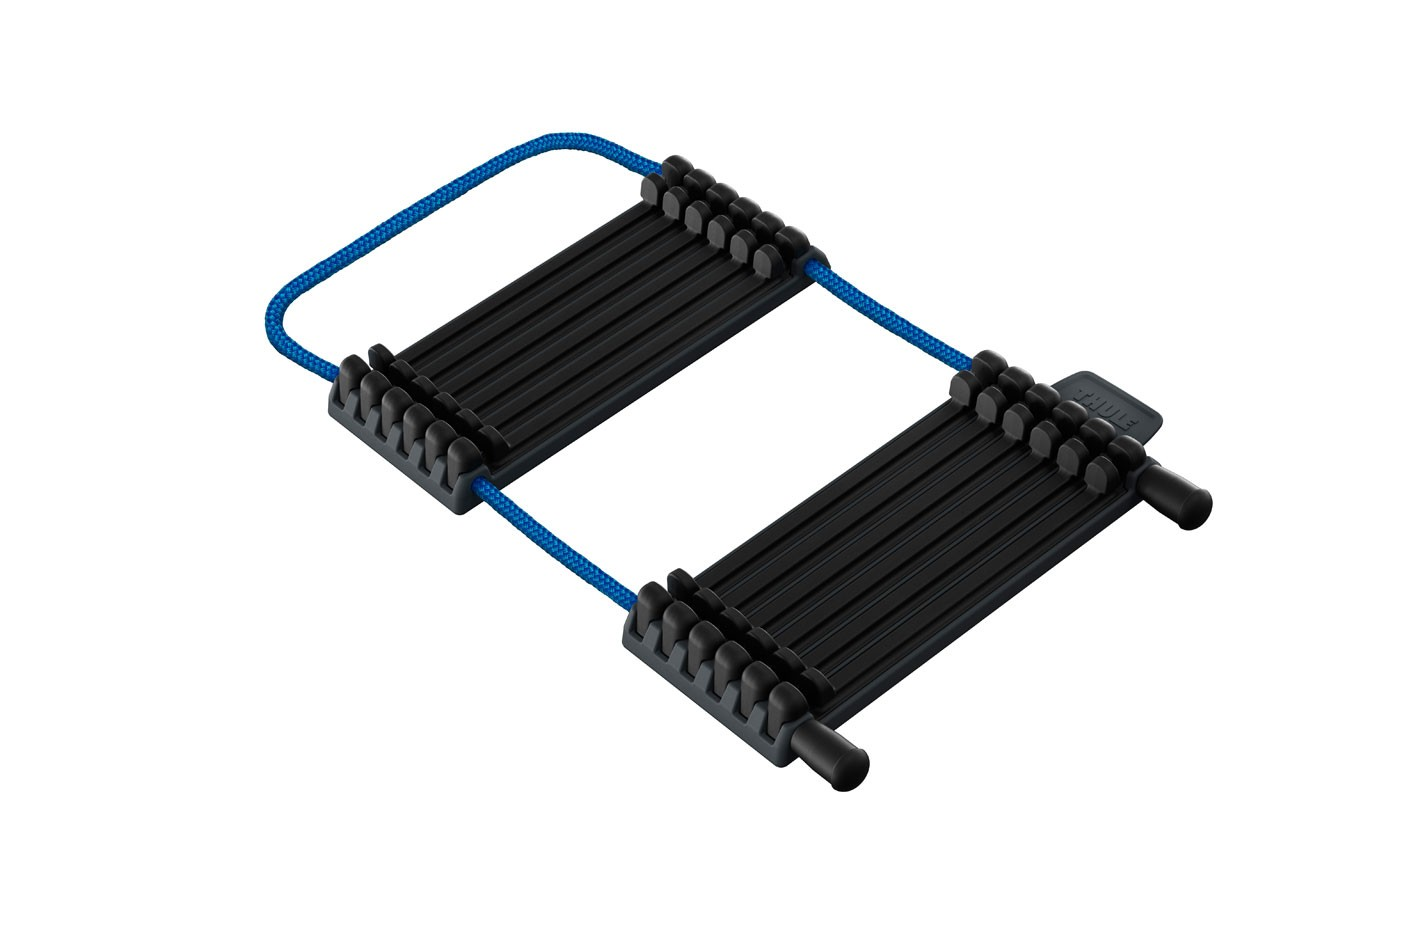 Thule 984101 - Carbon Frame Protector